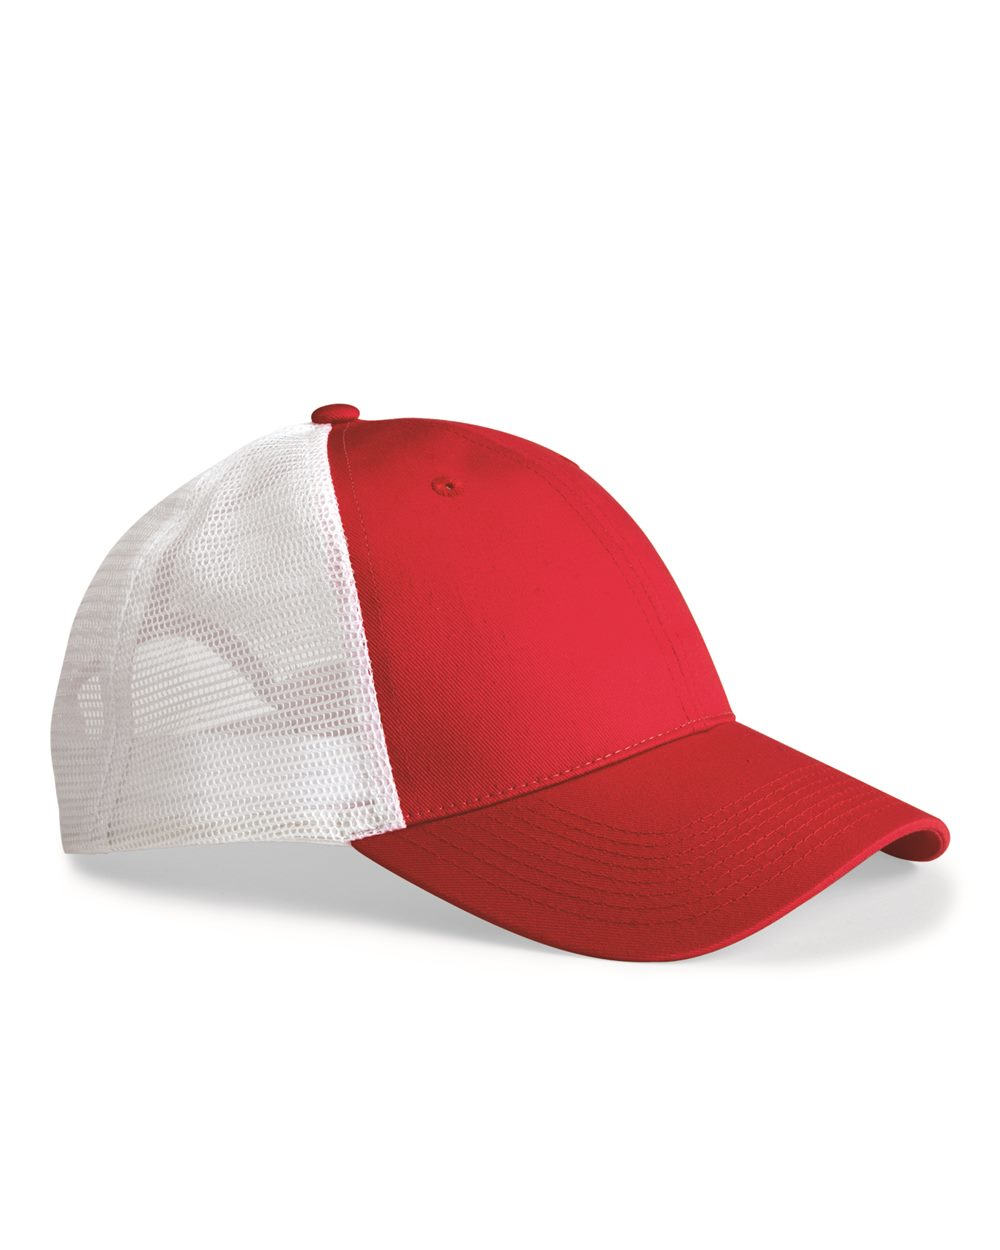 Valucap VC400 - Mesh Back Trucker Cap